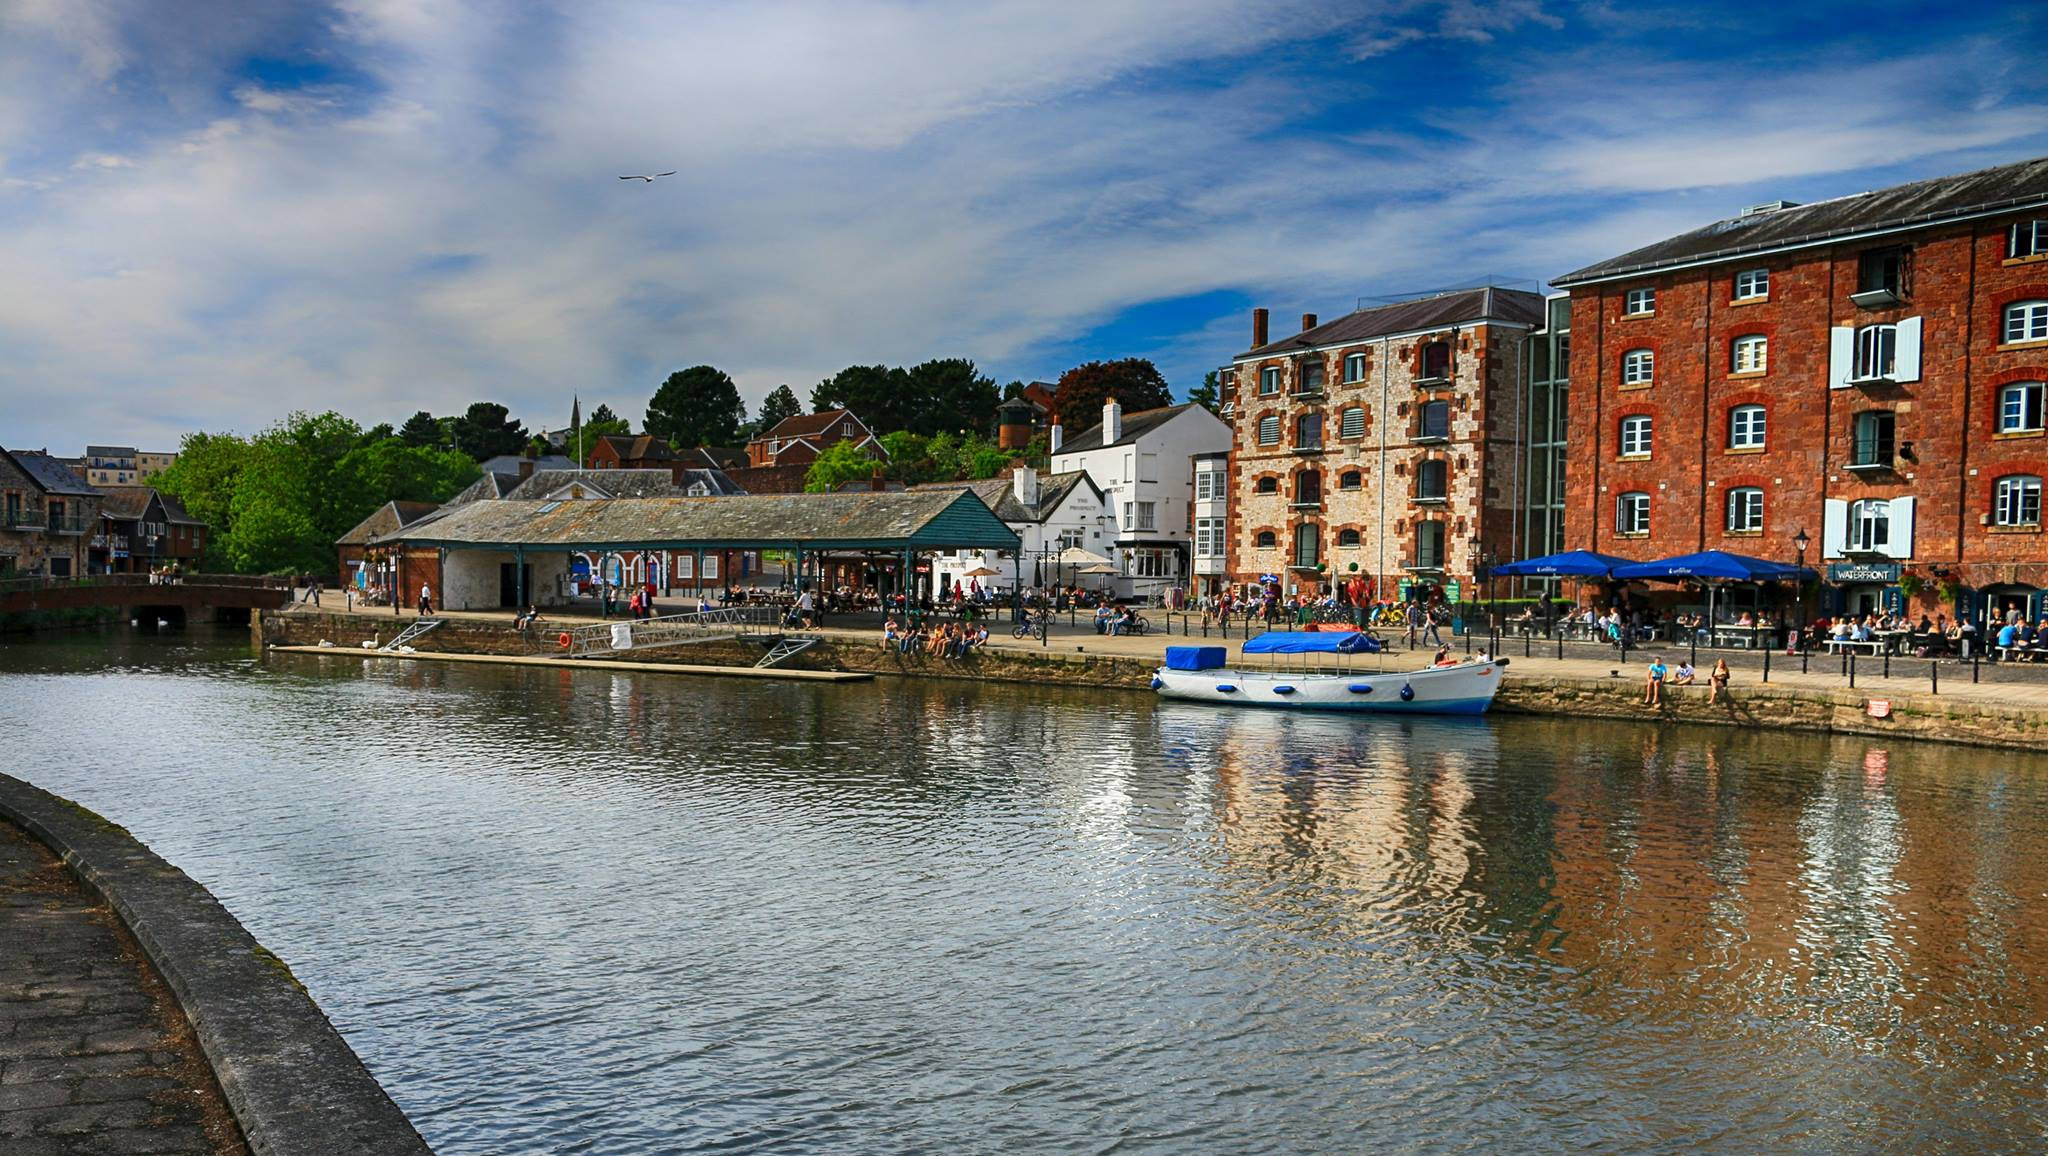 A riverside scene in Exeter. Photo by Florin Oresanu